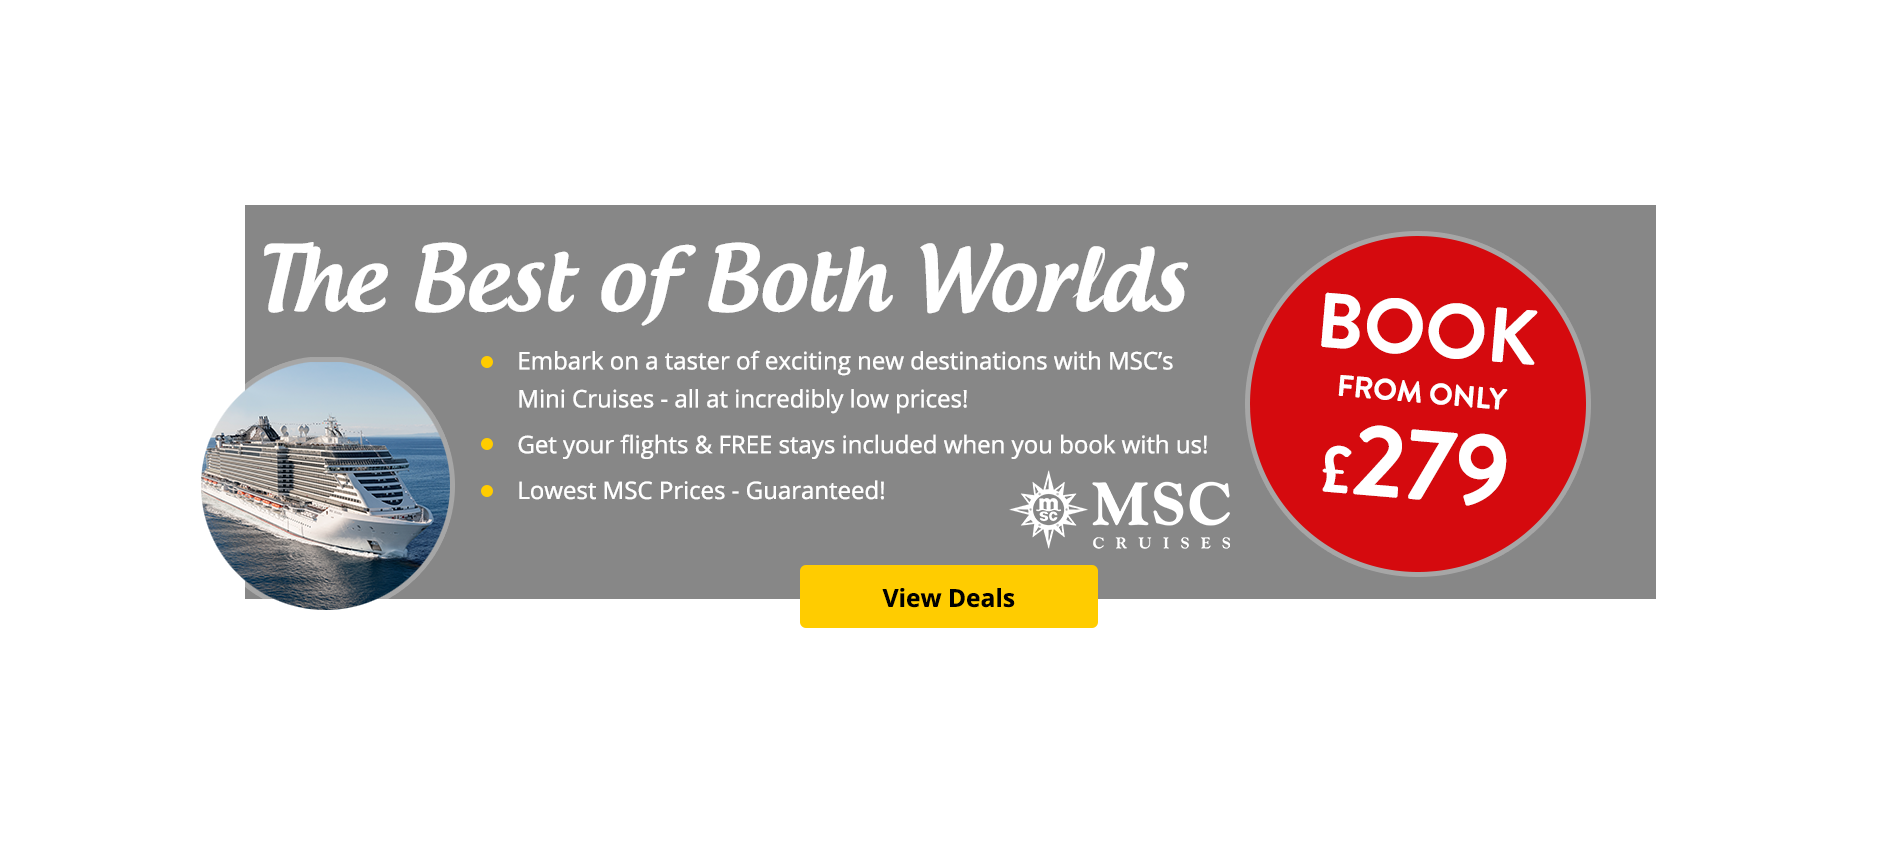 Embark on a taster of exciting new destinations with MSC's Mini Cruises - all at incredibly low prices!